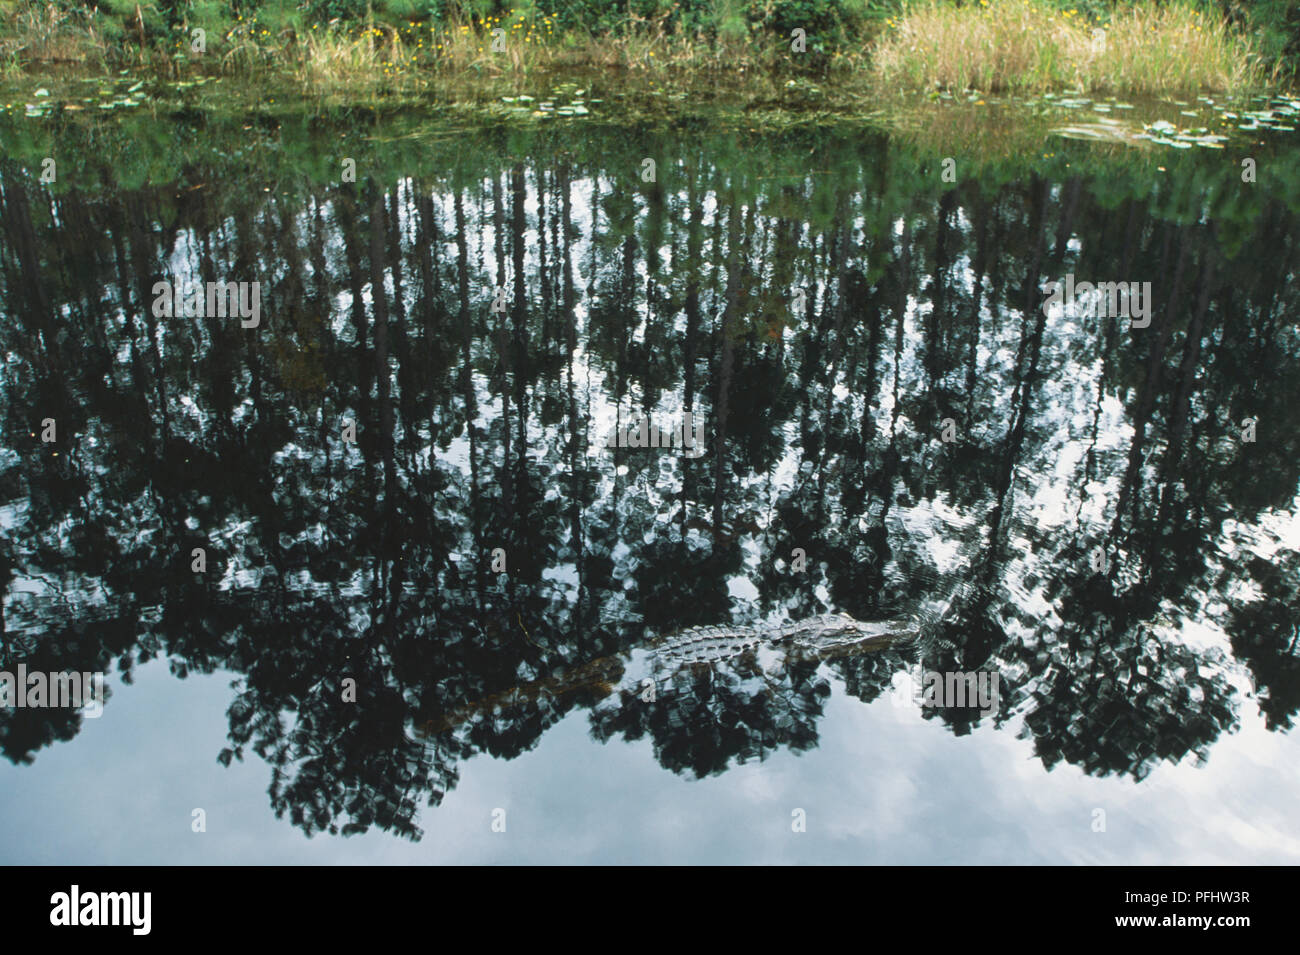 USA, Georgia, Okefenokee Swamp National Wildlife Refuge, Suwanee Canal Recreation Area, alligator mississippiensis, American alligator, swimming against reflections of trees in water, side view - Stock Image